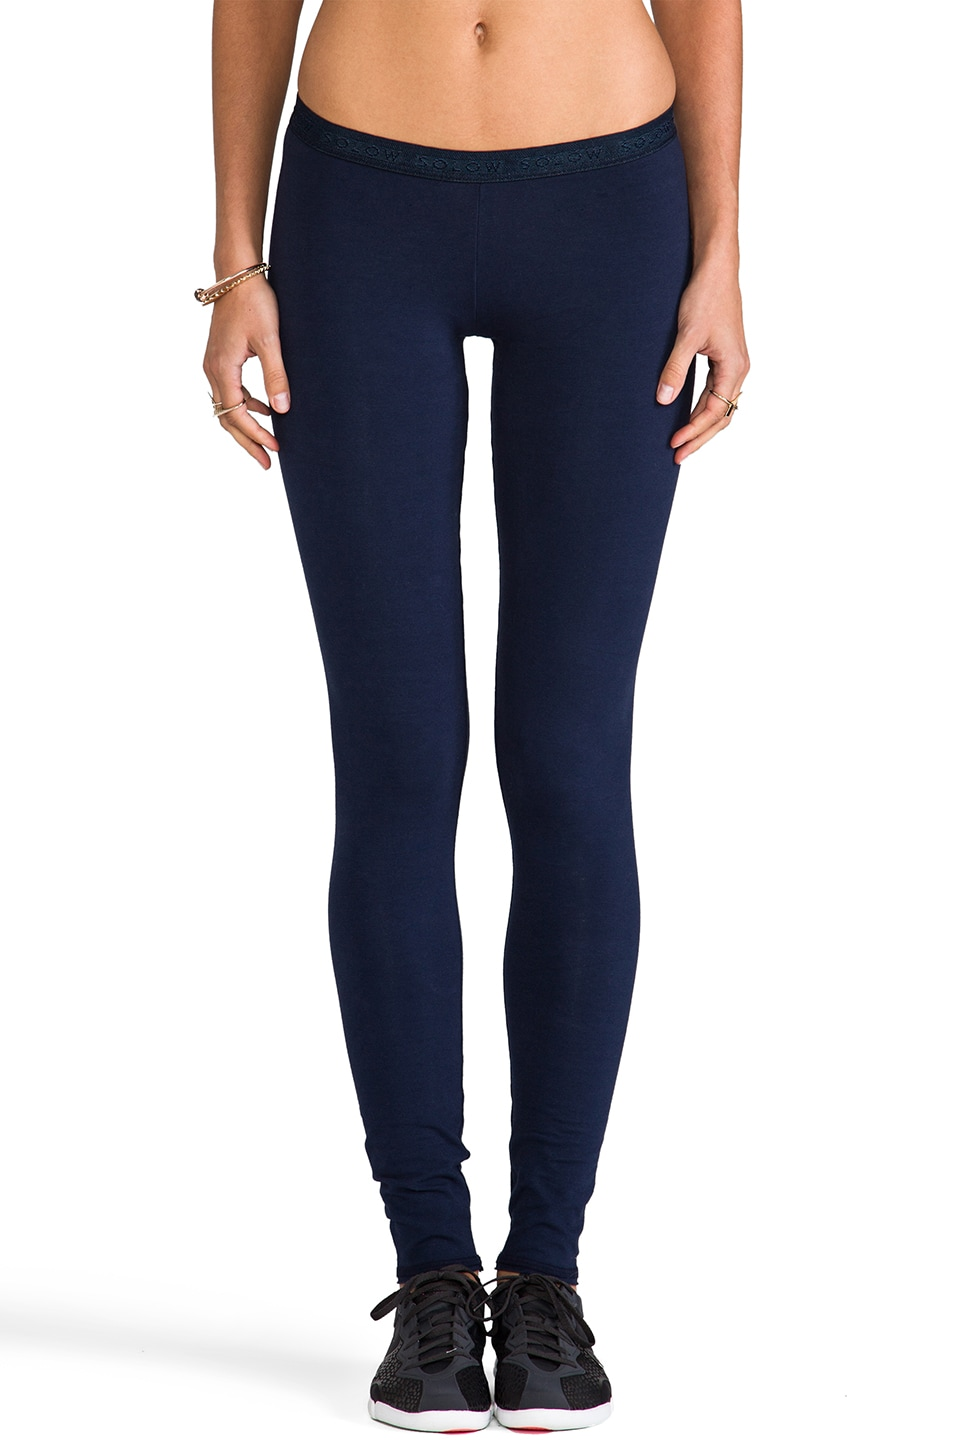 SOLOW Low Rise Legging in Navy